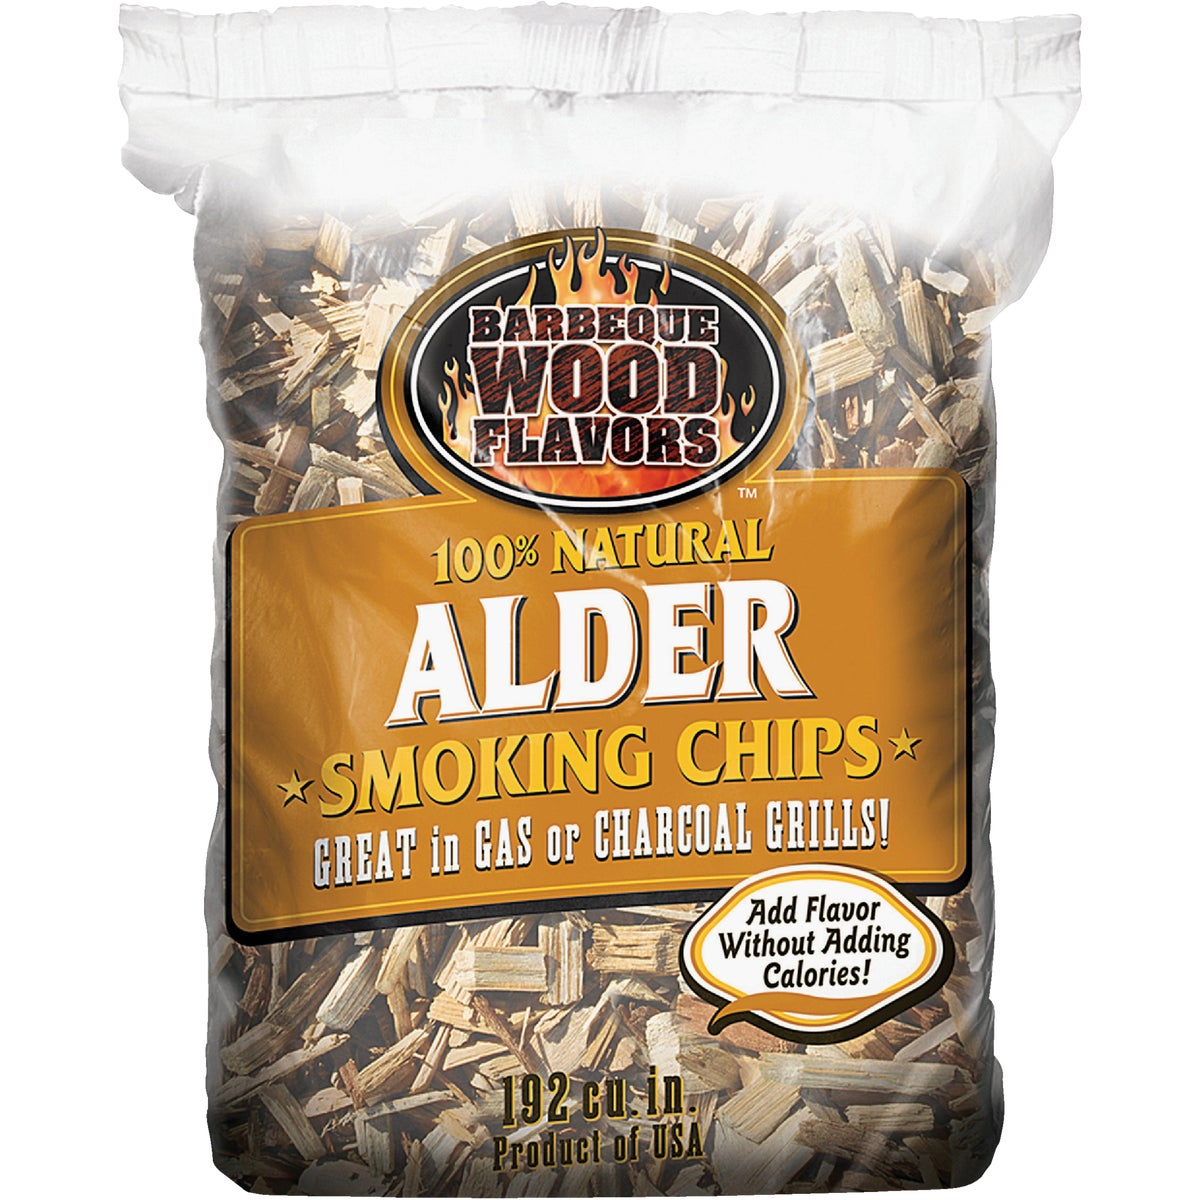 2.25LB ALDER WOOD CHIPS - 90305 by Barbeque Wood Flavor